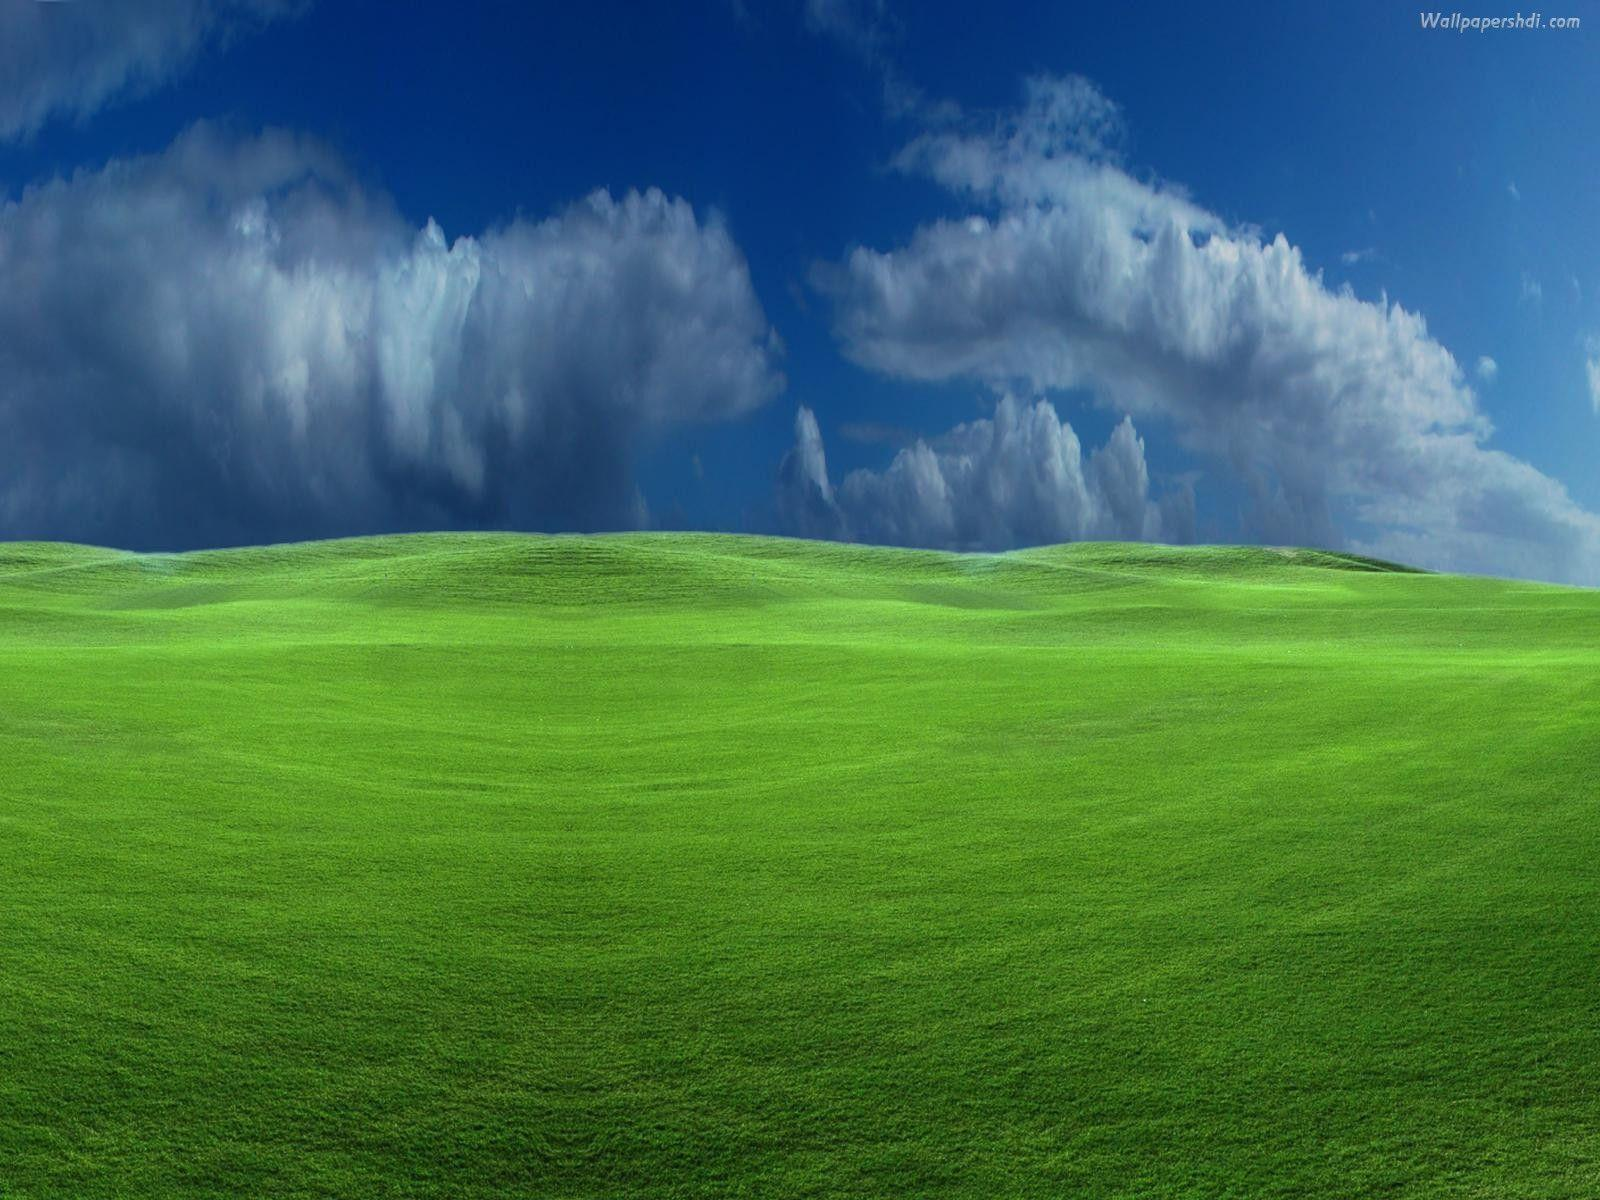 Storm Windows XP Widescreen Wallpaper Hd Background 47757 Label